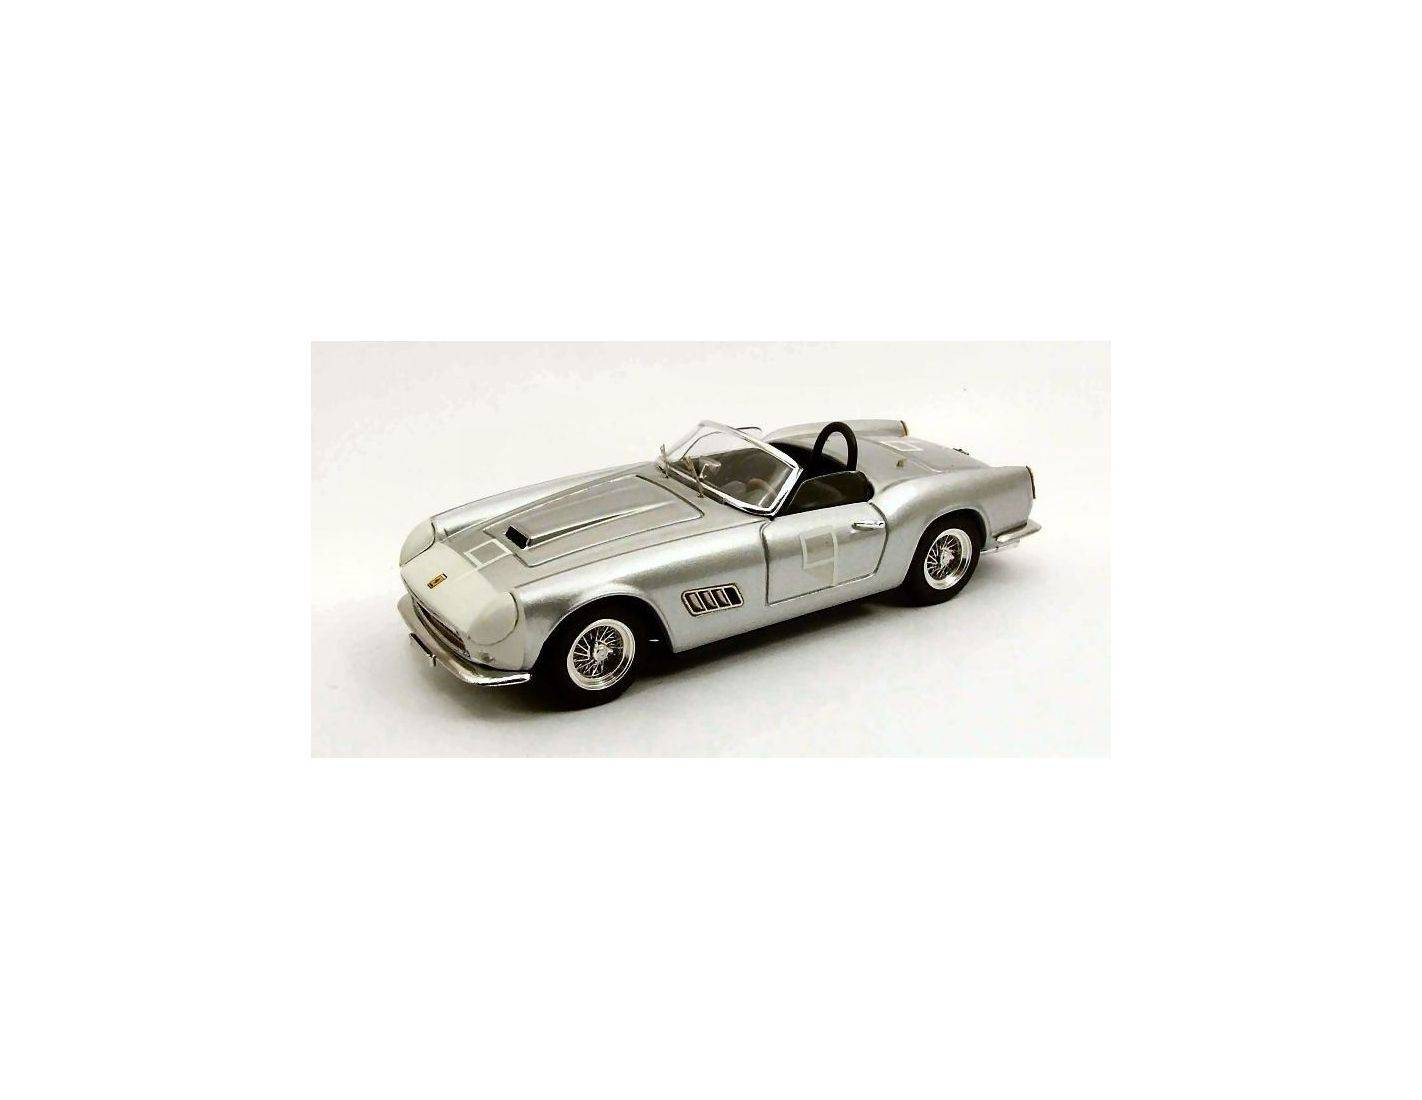 Art Model AM0240 FERRARI 250 CALIFORNIA N.9 WINNER LIME ROCK 1959 B.GROSSMAN 1:43 Modellino